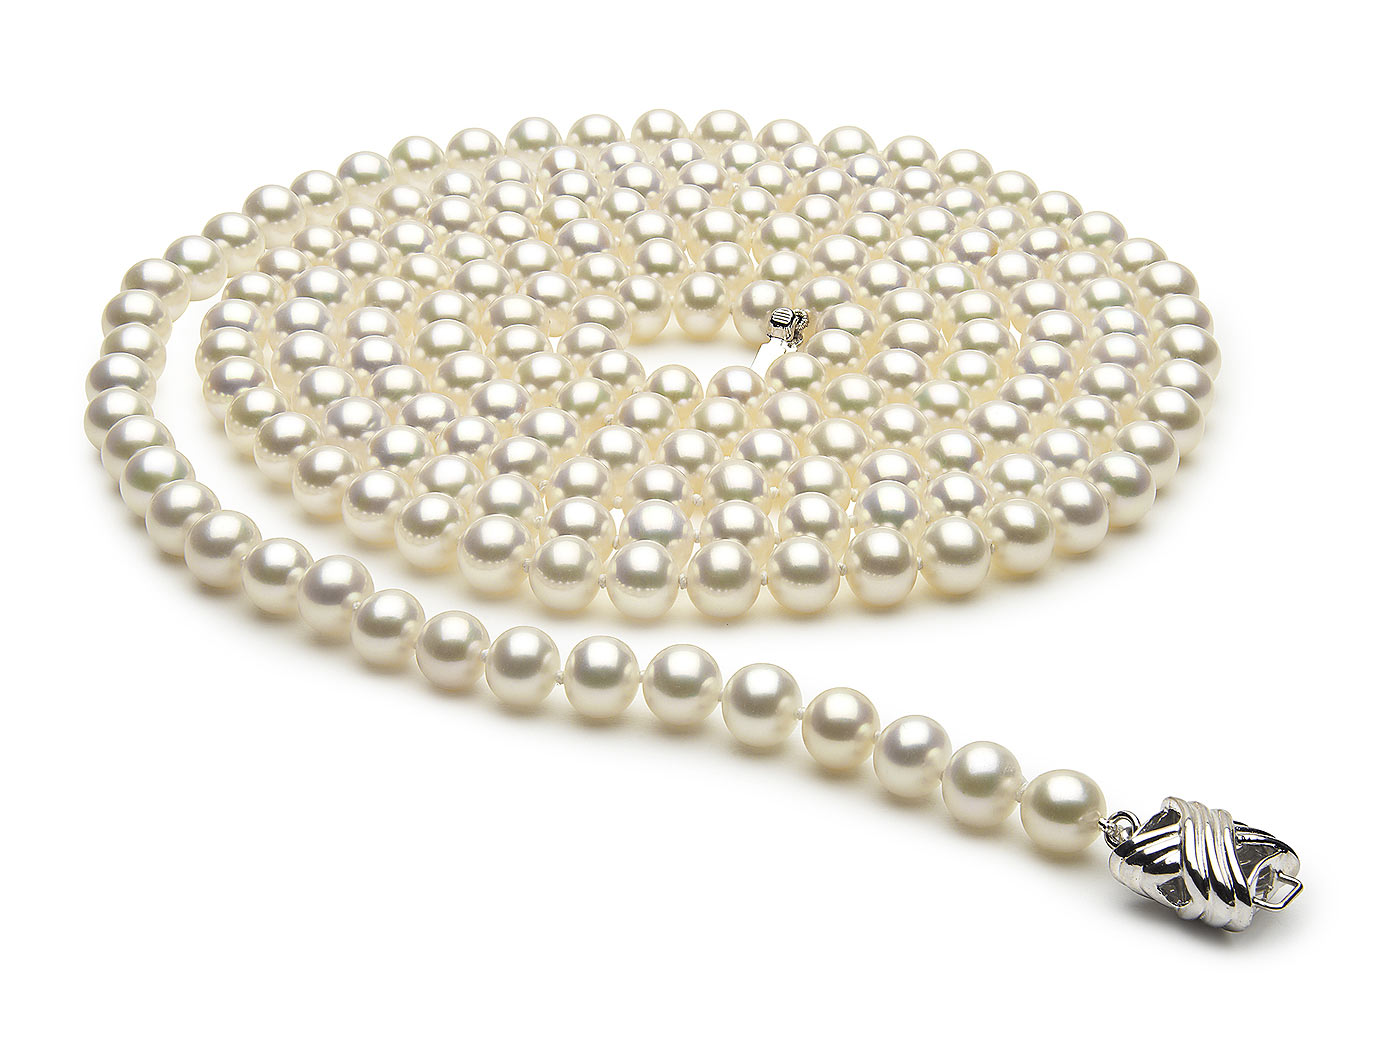 54 Inch 6.5mm x 7mm Freshwater Cultured Pearl Necklace